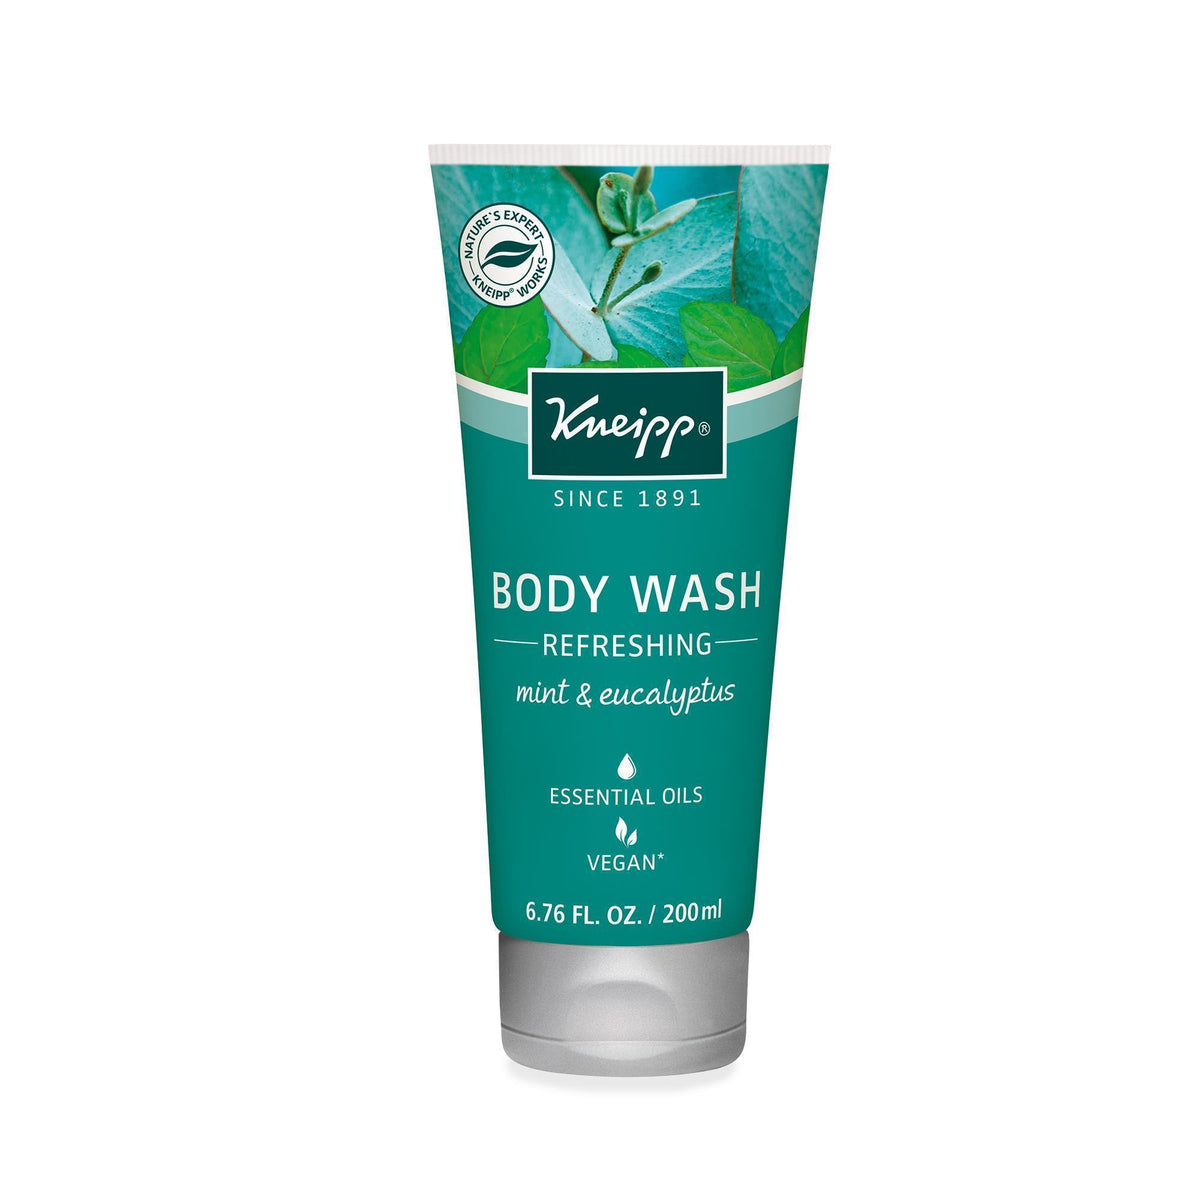 Kneipp Refreshing Body Wash 6.76 Fl. Oz.